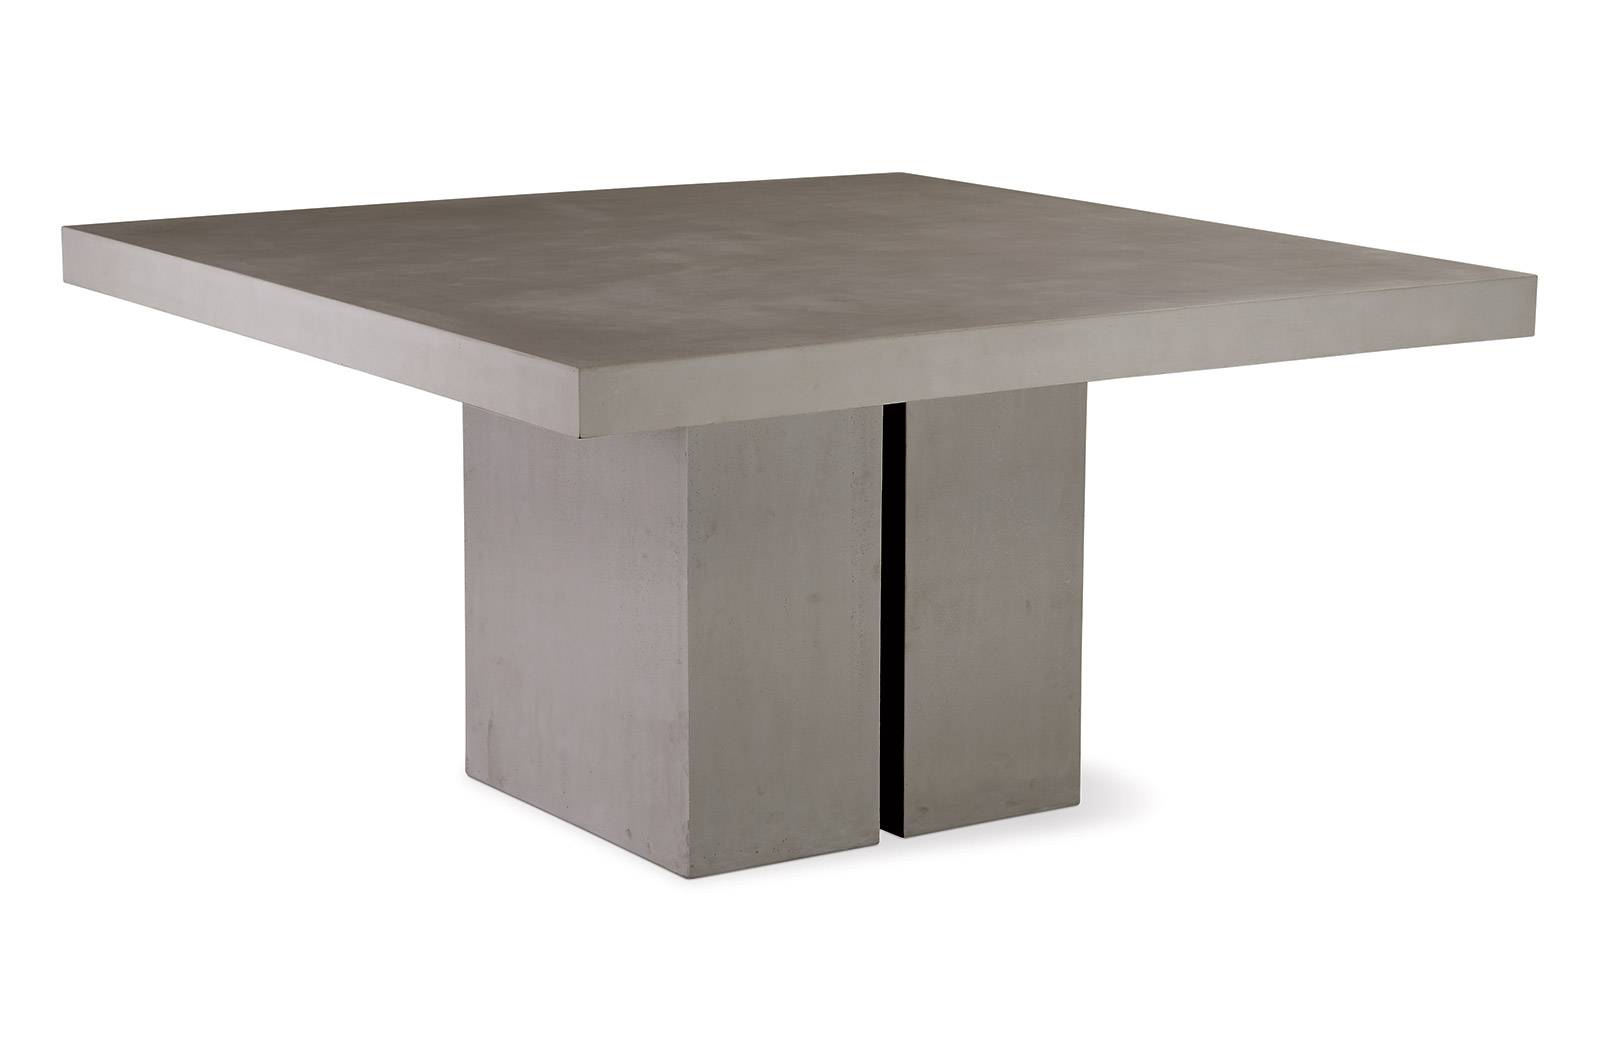 Perpetual Delapan Table